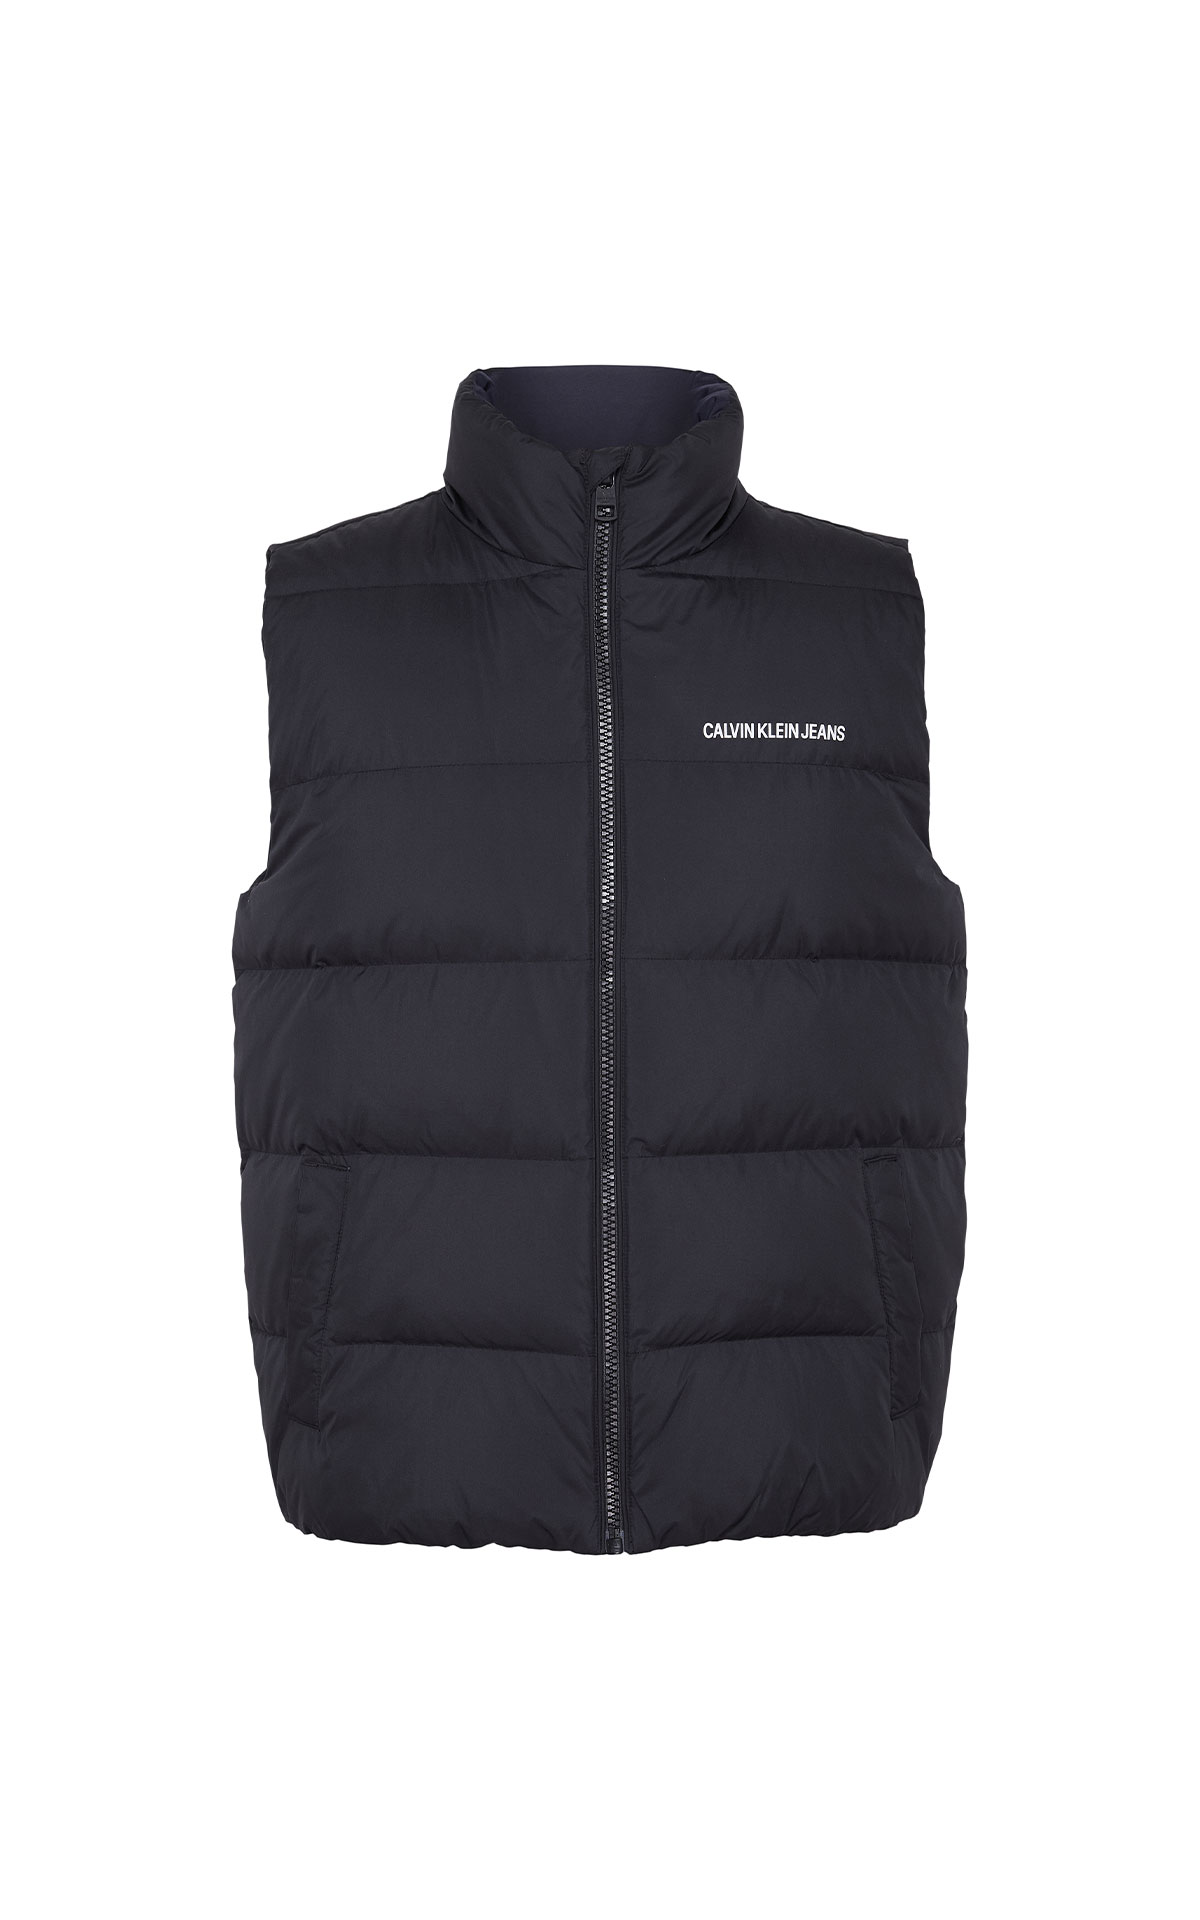 Calvin Klein Jeans Black beauty vest from Bicester Village